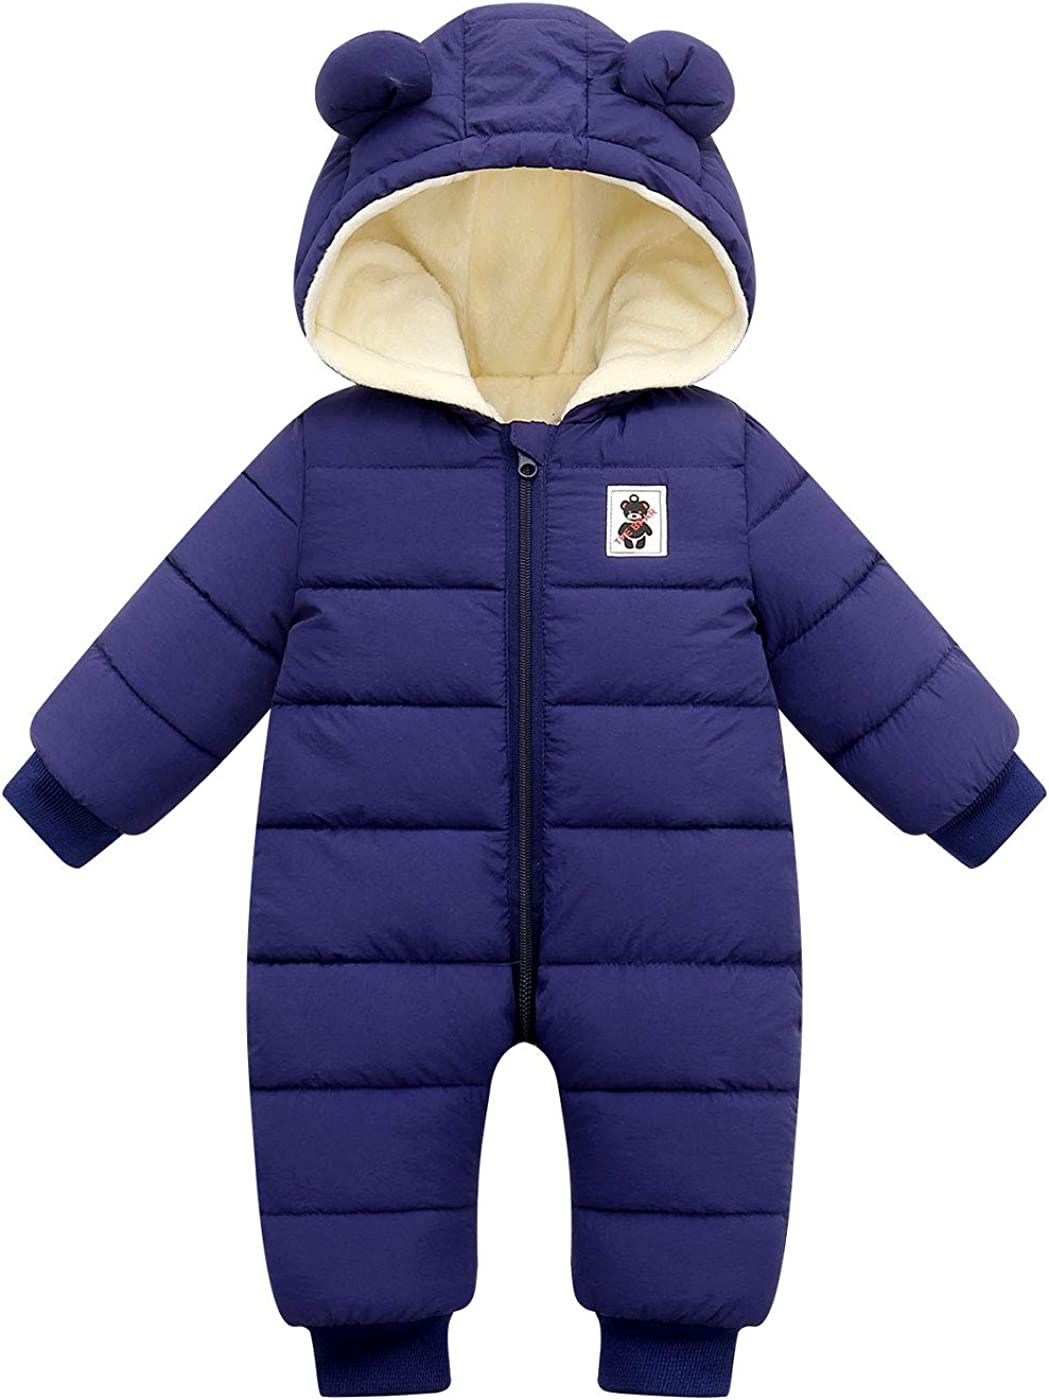 Happy Cherry Baby Hooded Snowsuit Infant Winter Clothes Zipper Long Sleeve Outerwear Cotton Warm One Piece Romper